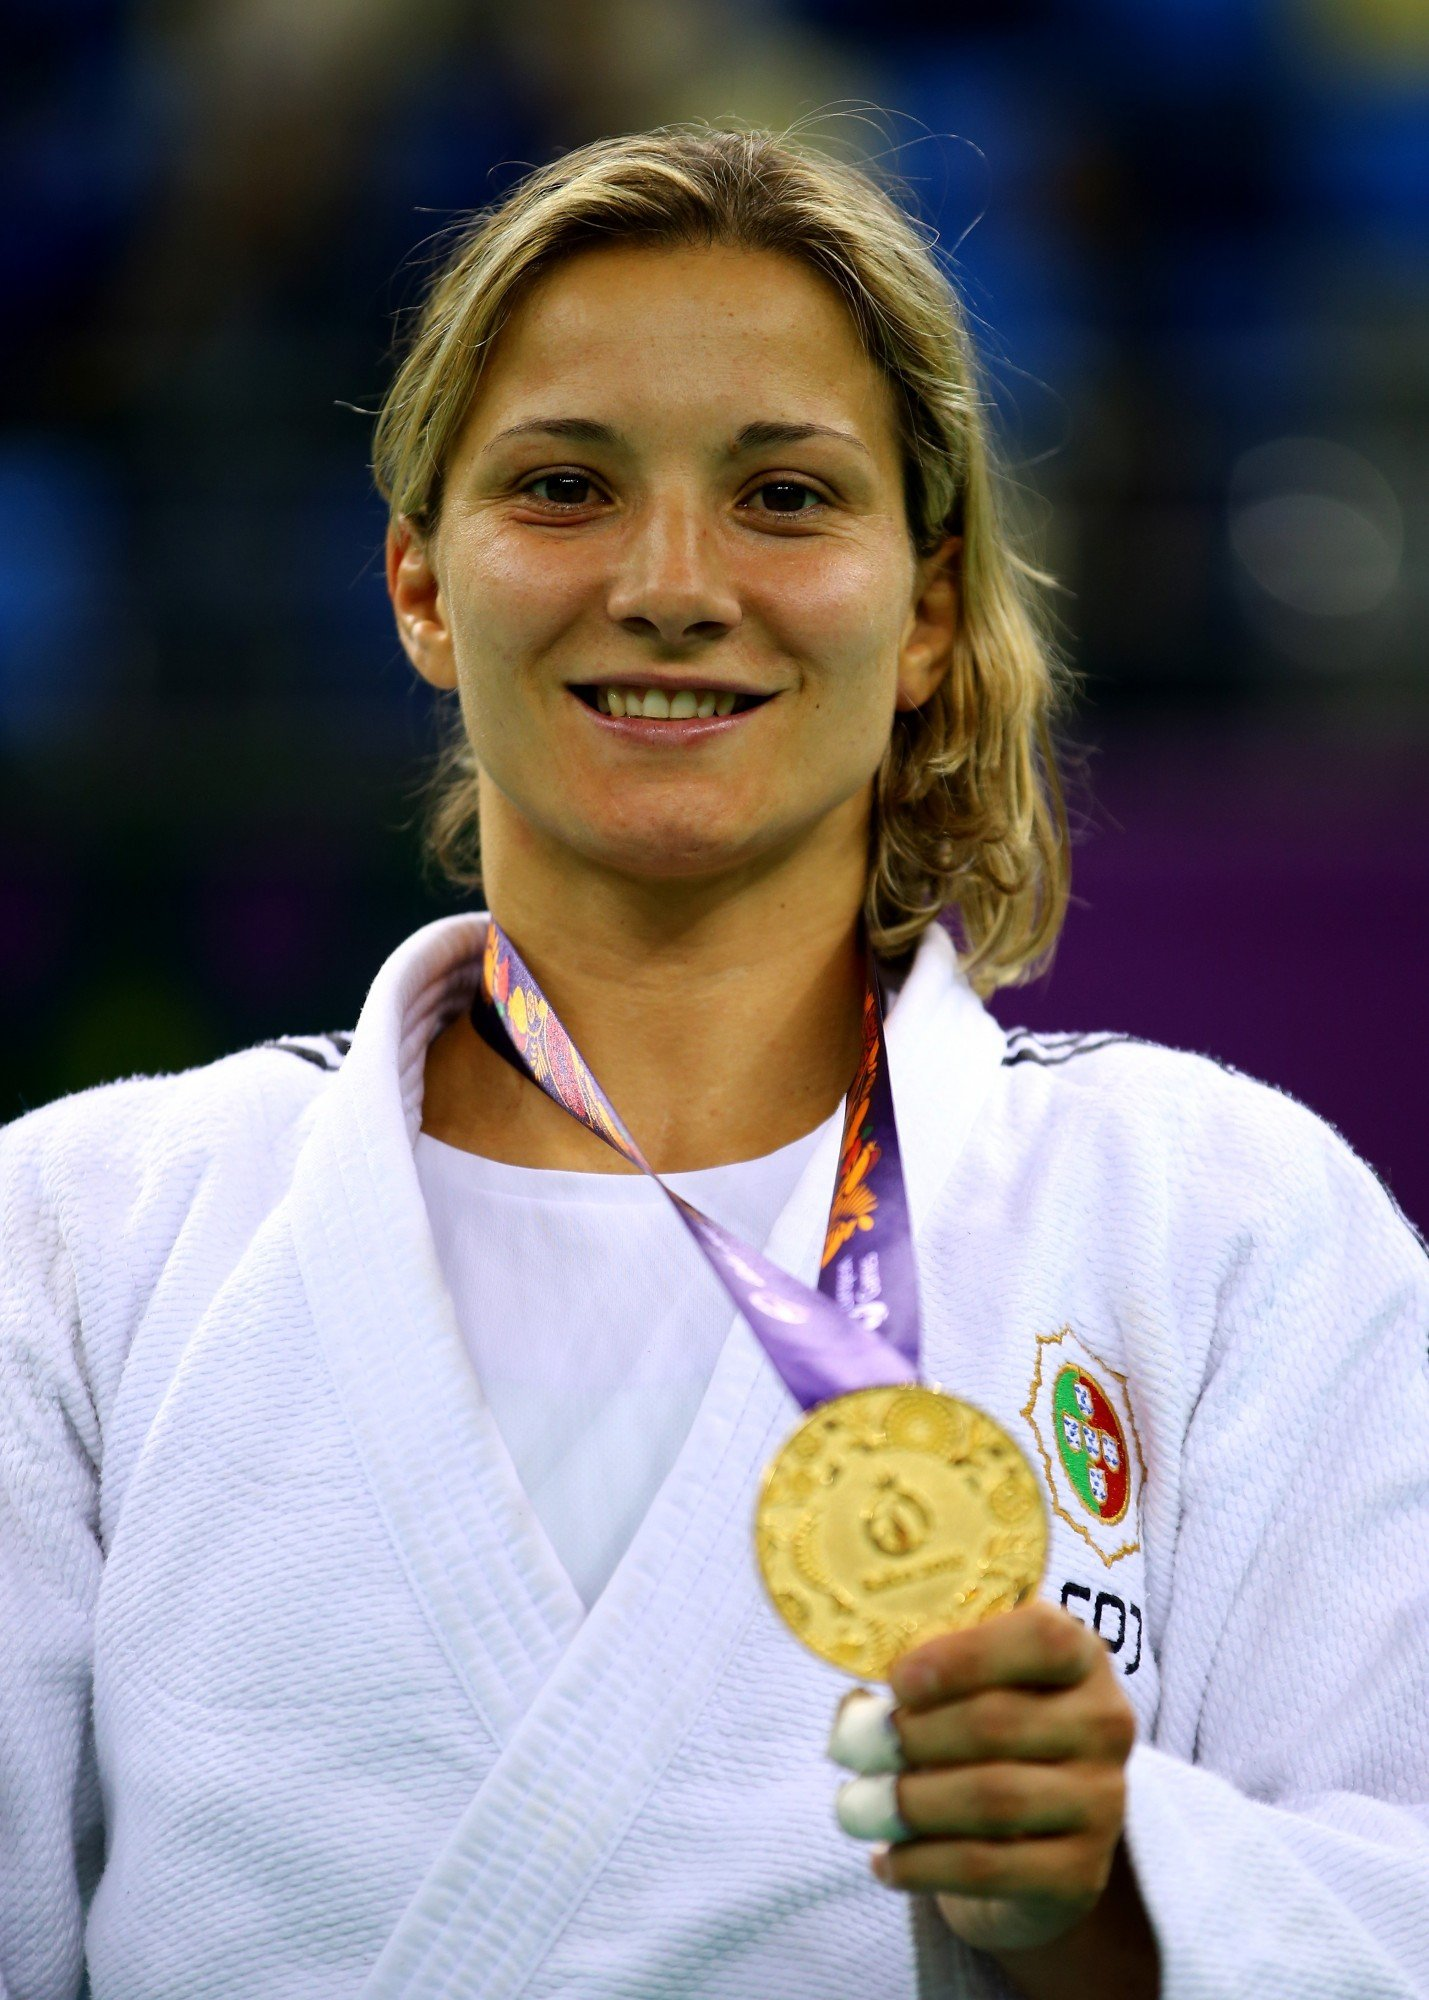 BAKU, AZERBAIJAN - JUNE 25:  Gold medalist Telma Monteiro of Portugal poses on the medal podium following the Women's Judo -57kg Finals during day thirteen of the Baku 2015 European Games at the Heydar Aliyev Arena on June 25, 2015 in Baku, Azerbaijan.  (Photo by Richard Heathcote/Getty Images for BEGOC)